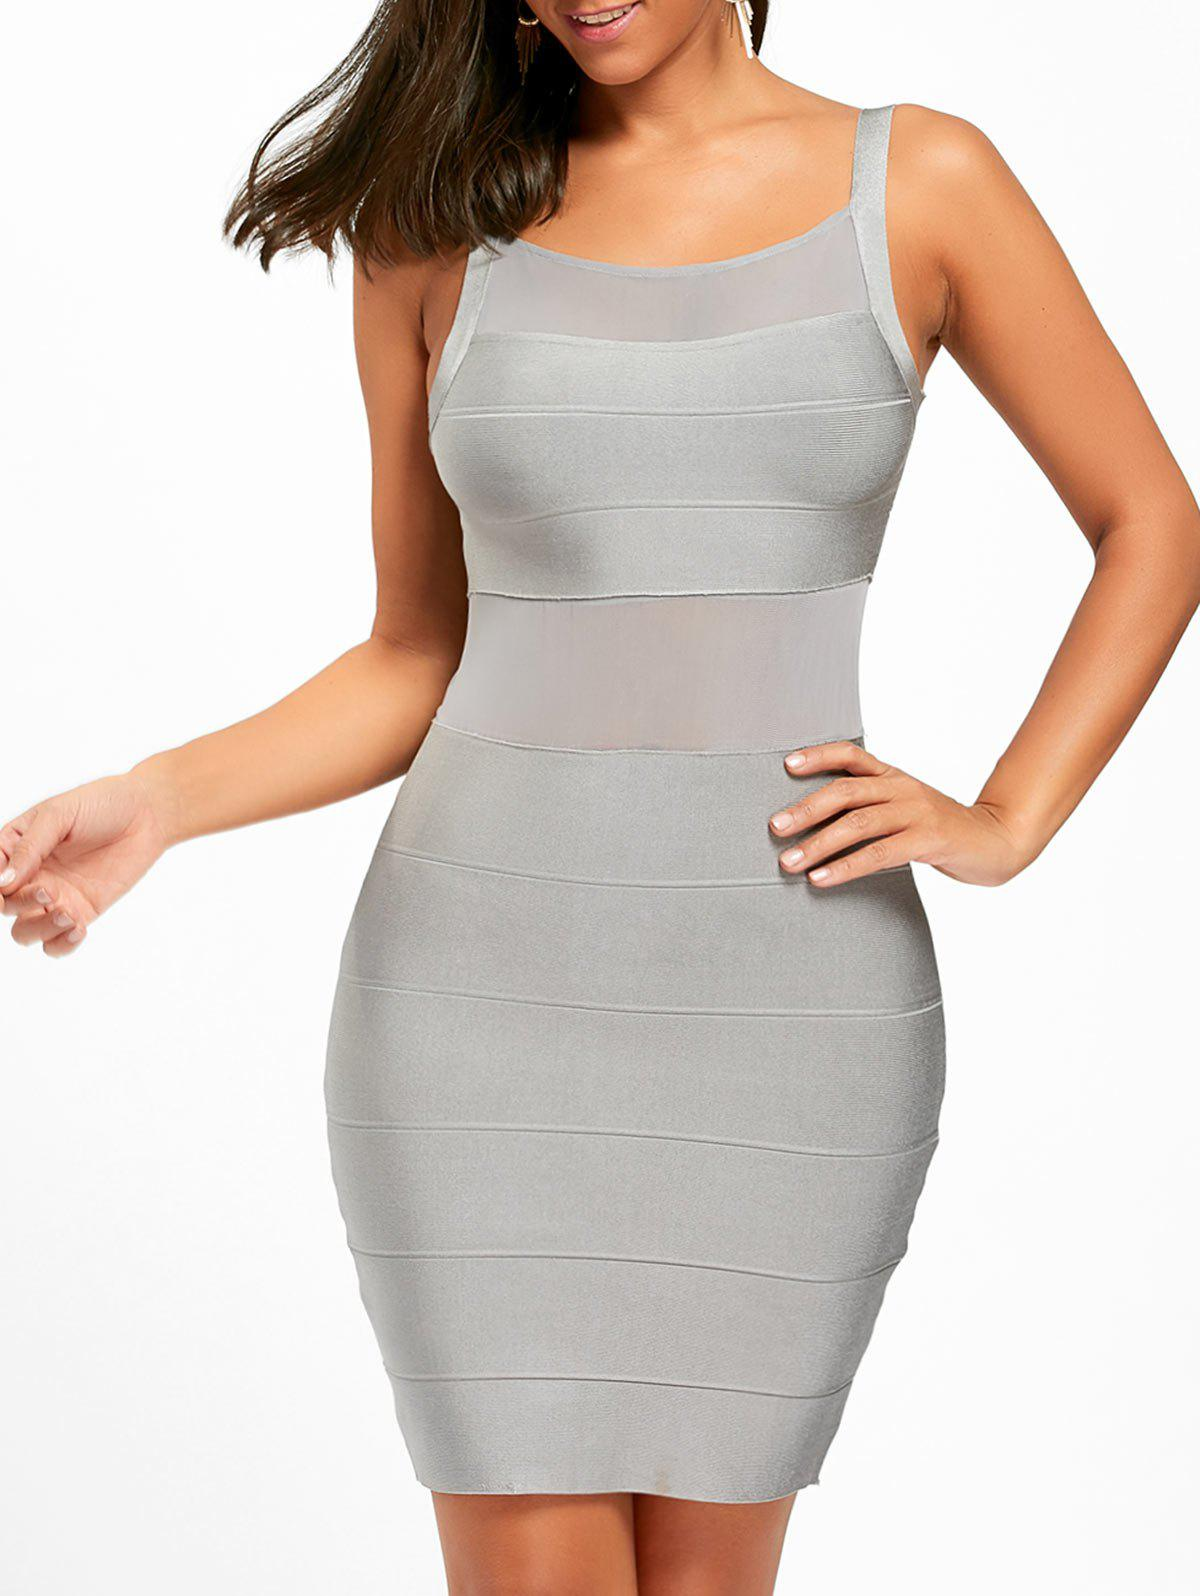 Store Mesh Insert Back Cut Out Bodycon Bandage Dress